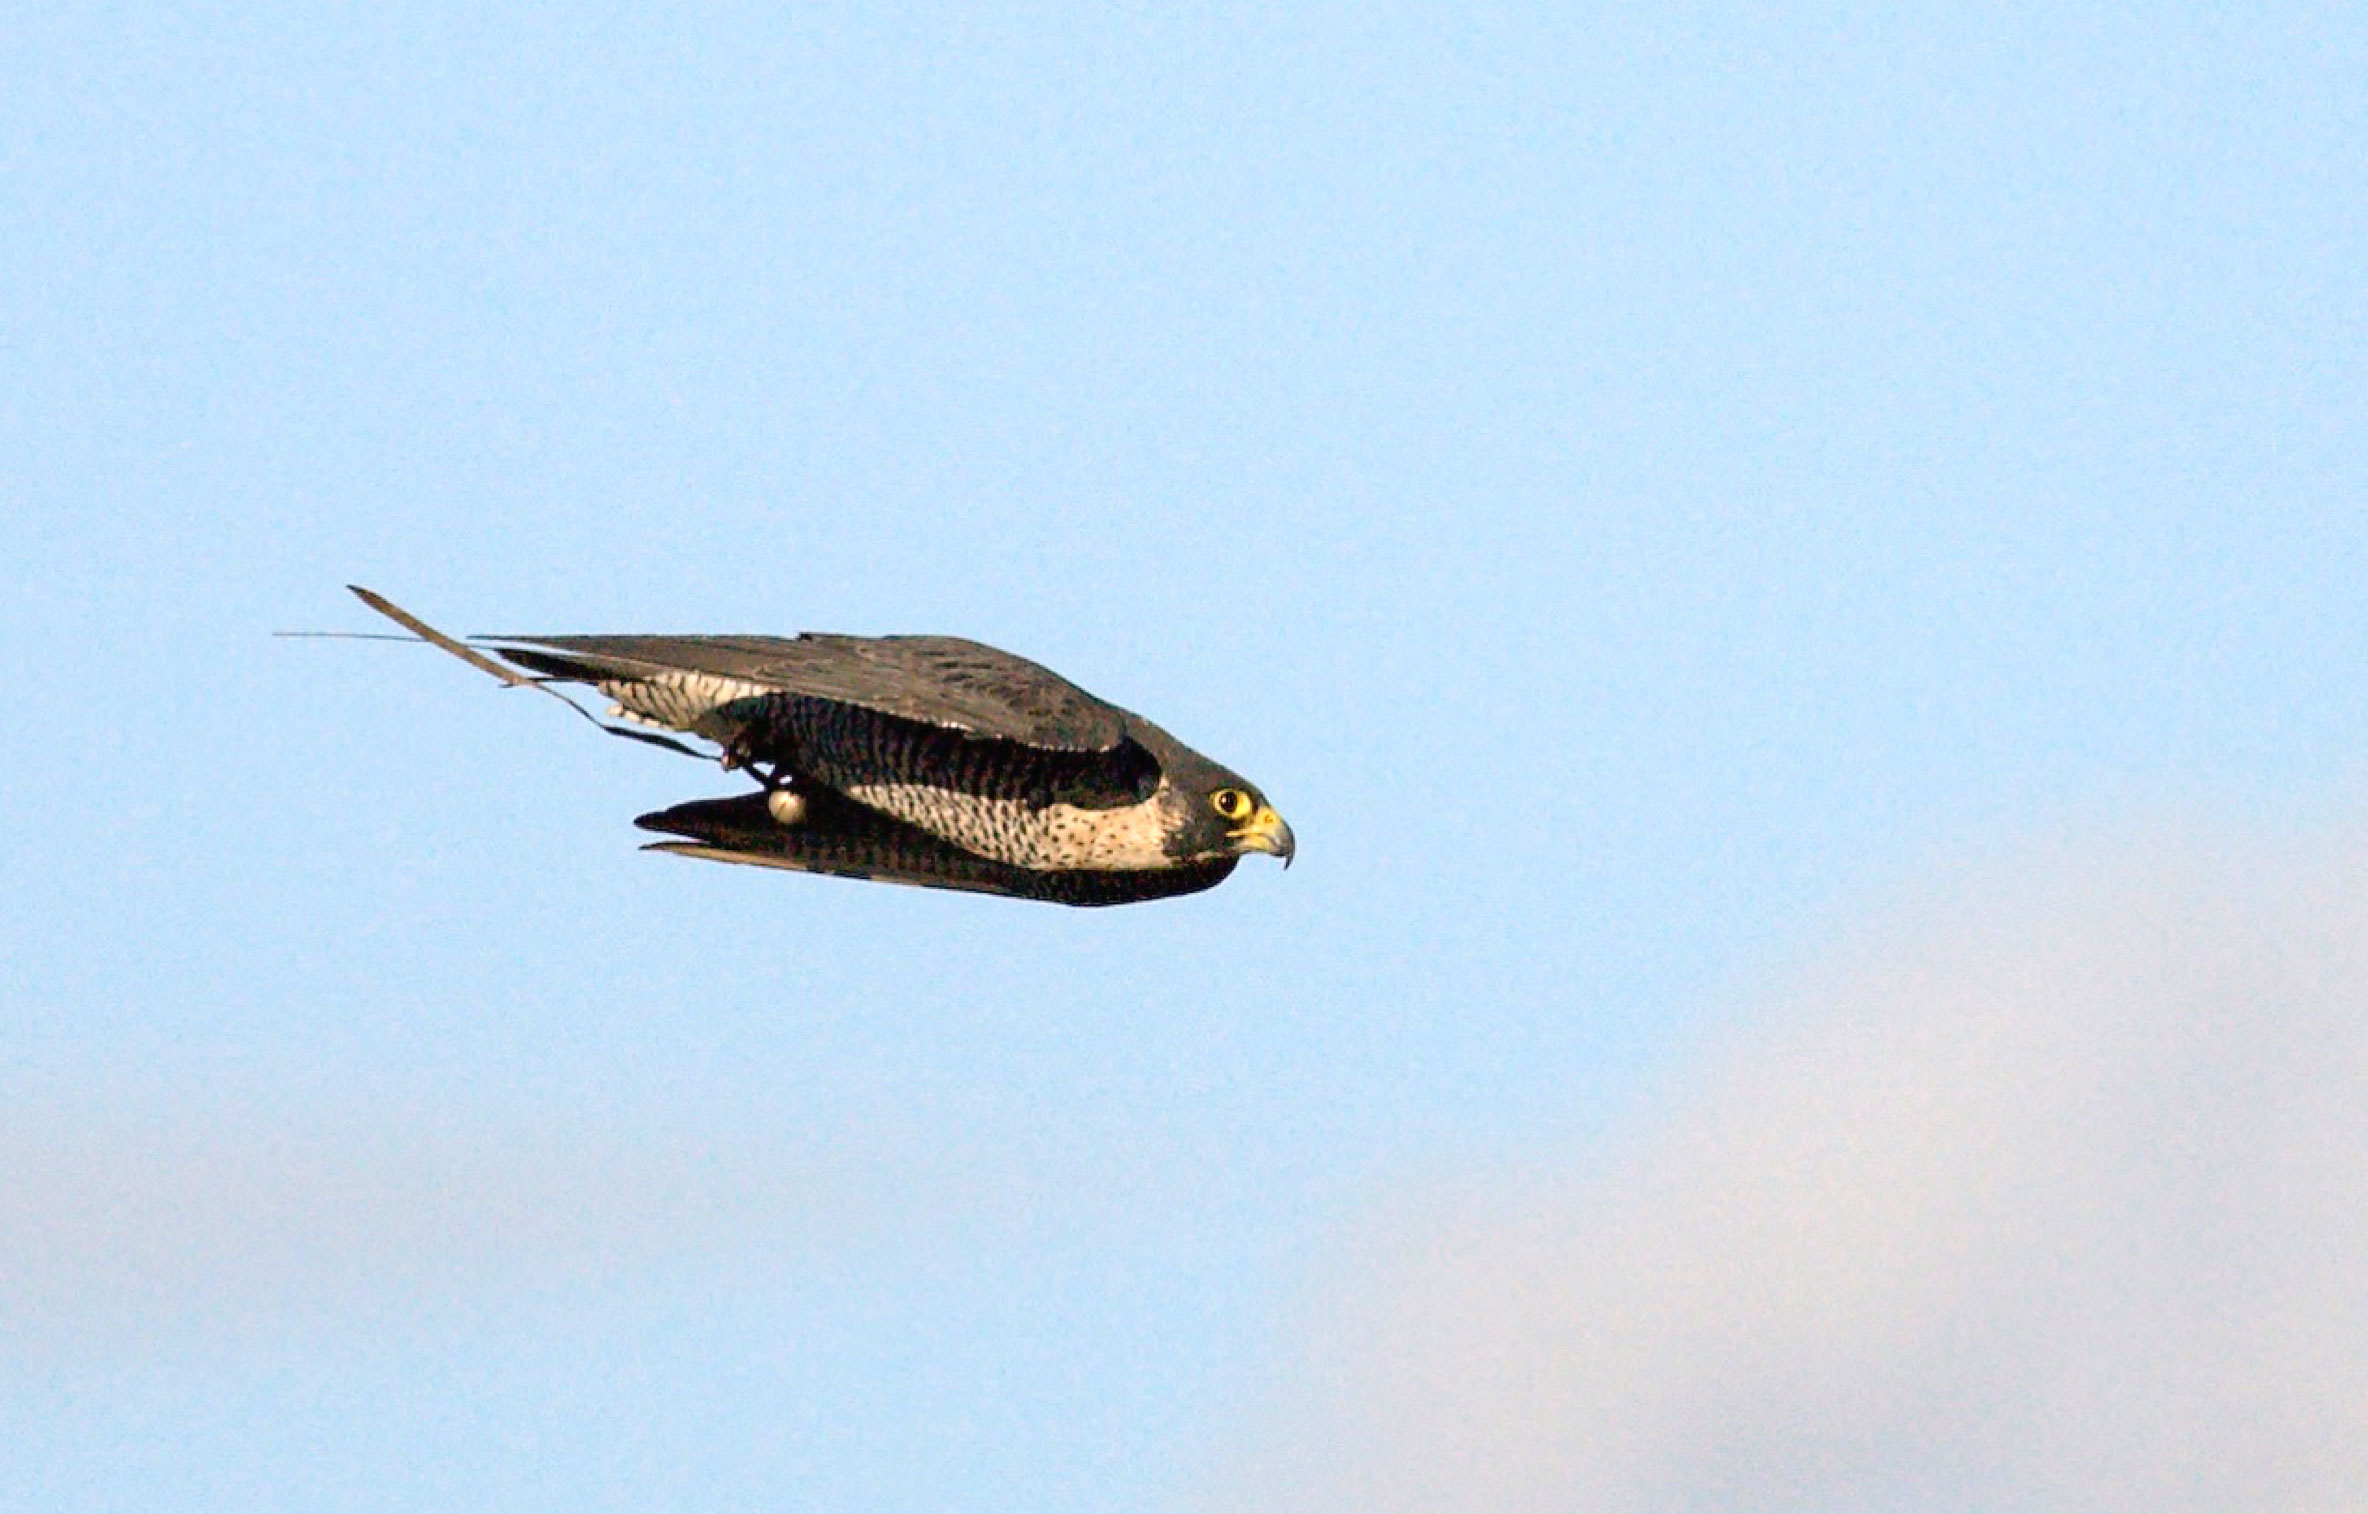 A stooping or diving Peregrine from the University of Oxford study. Caroline Brighton